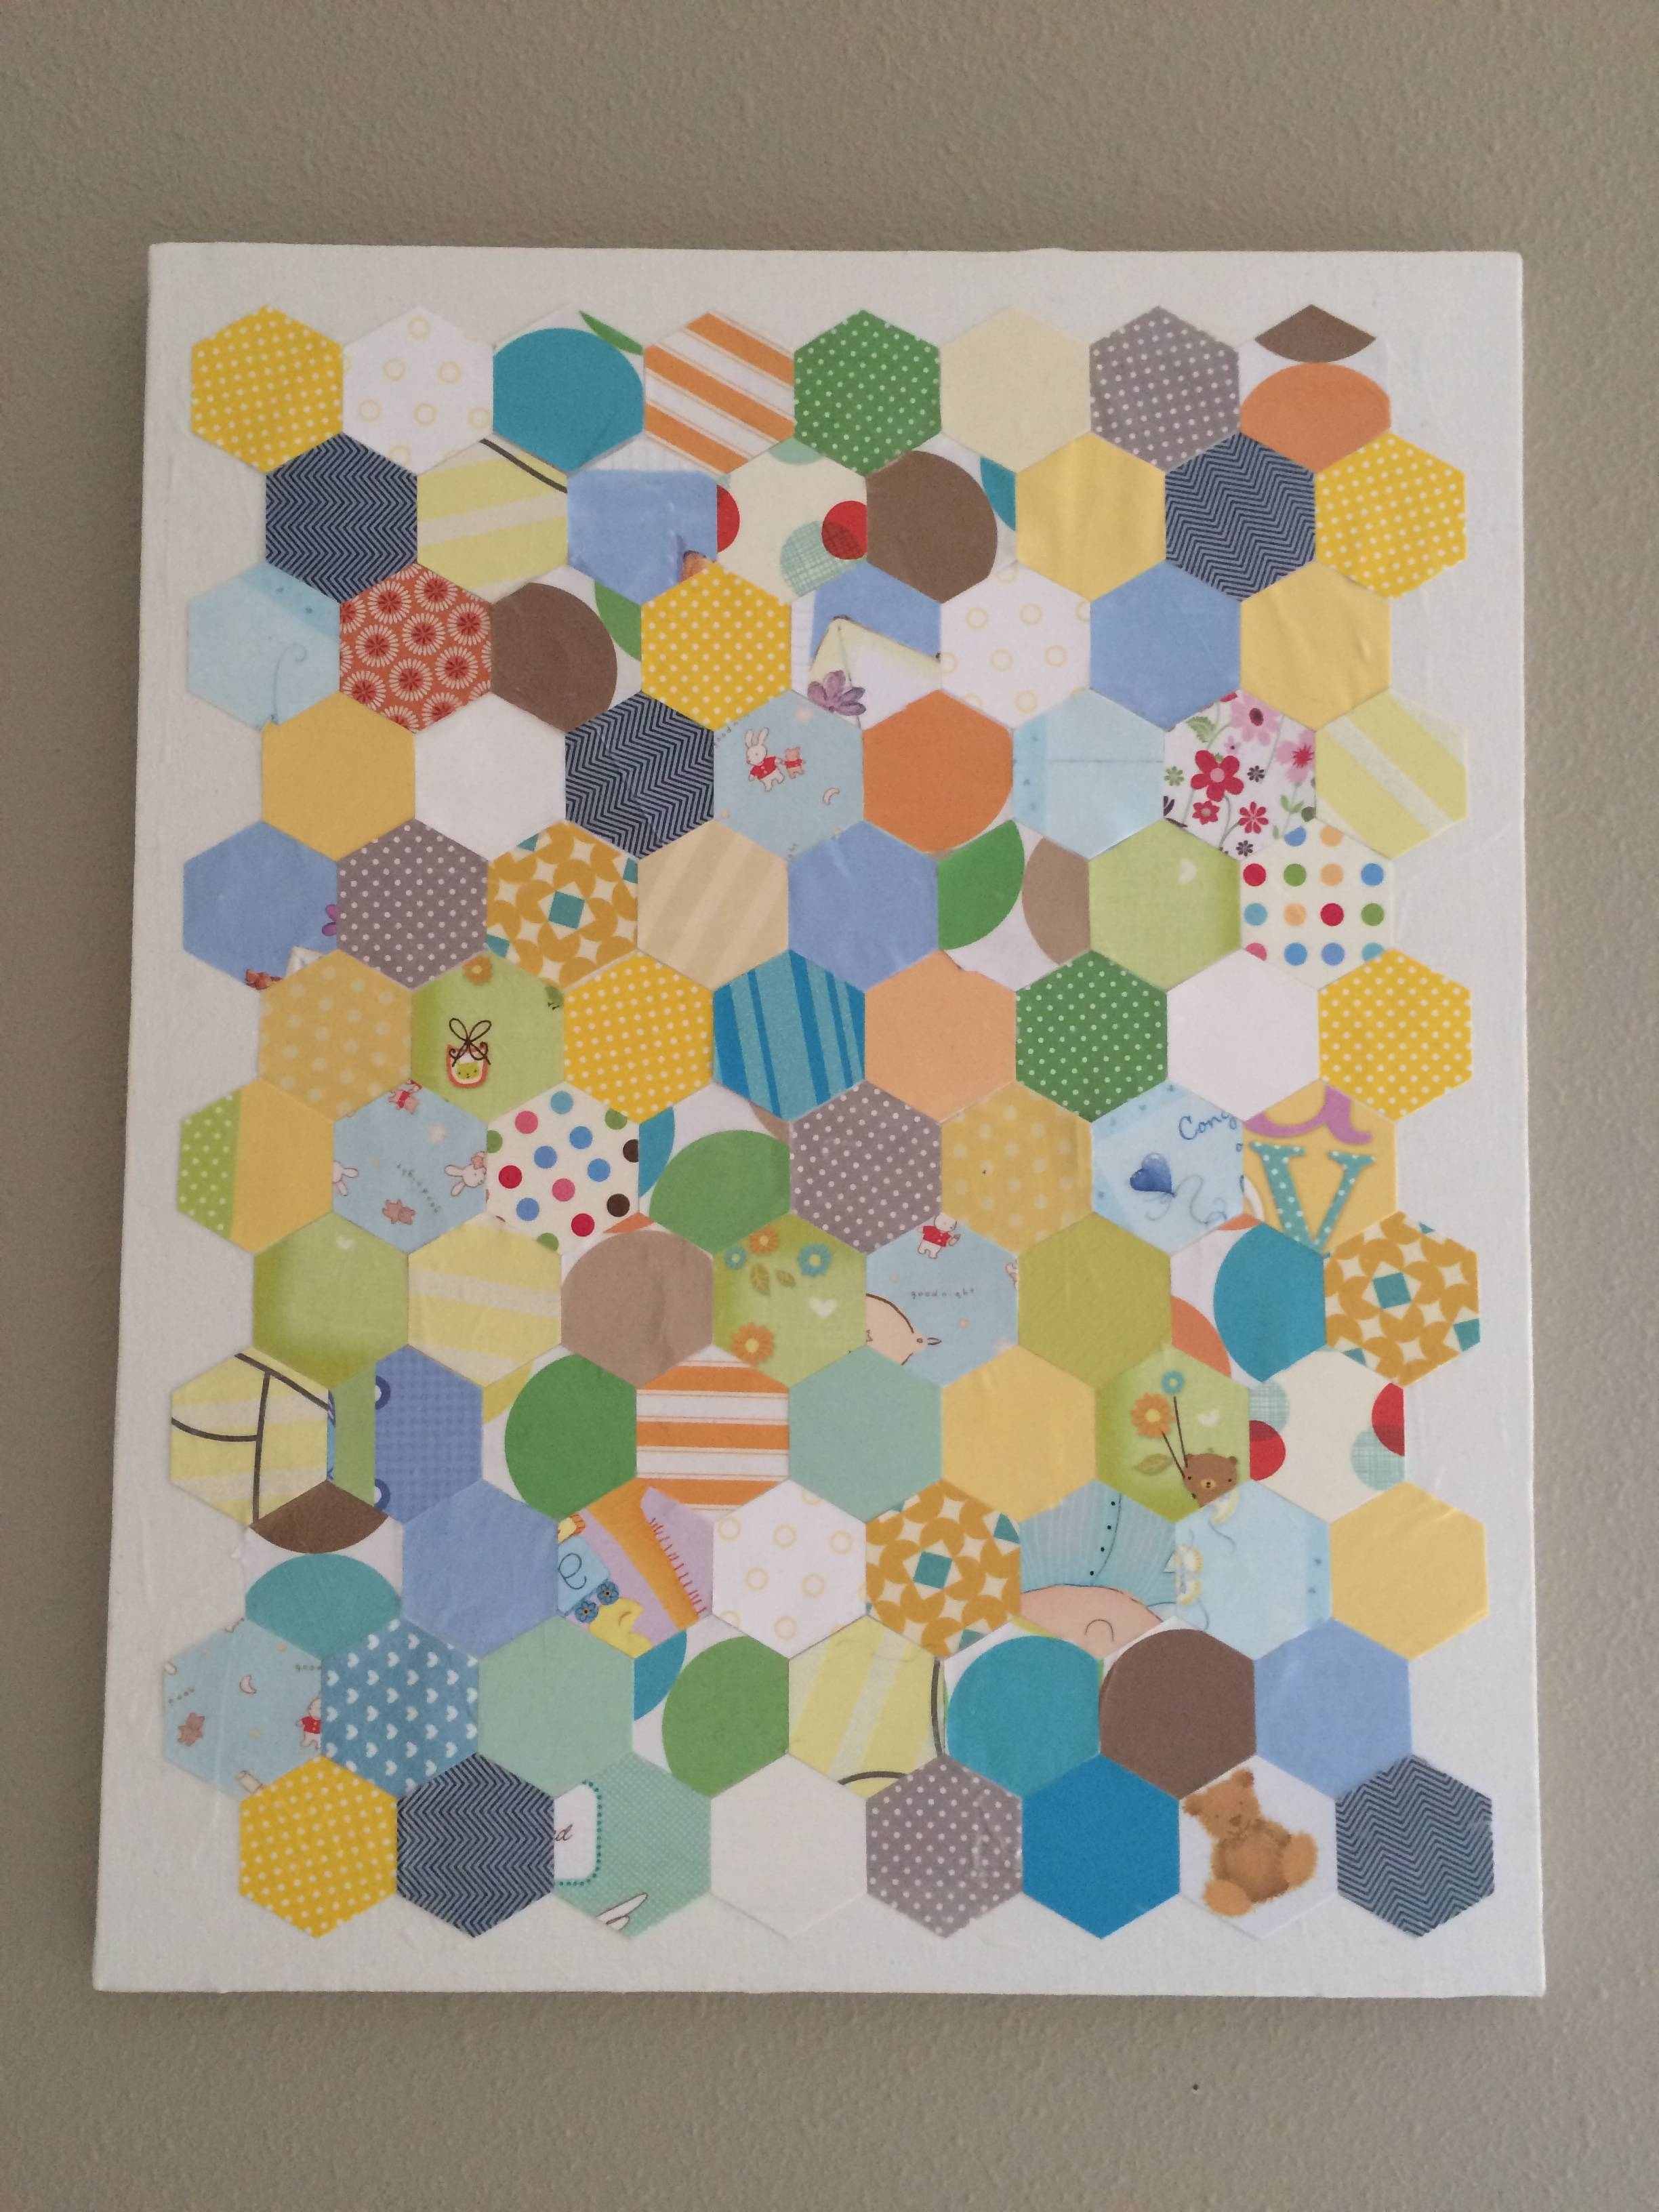 Fresh Nursery Wall Art Ideas: Decoupage, Glue, Sew And Staple Within Latest Decoupage Wall Art (View 12 of 30)